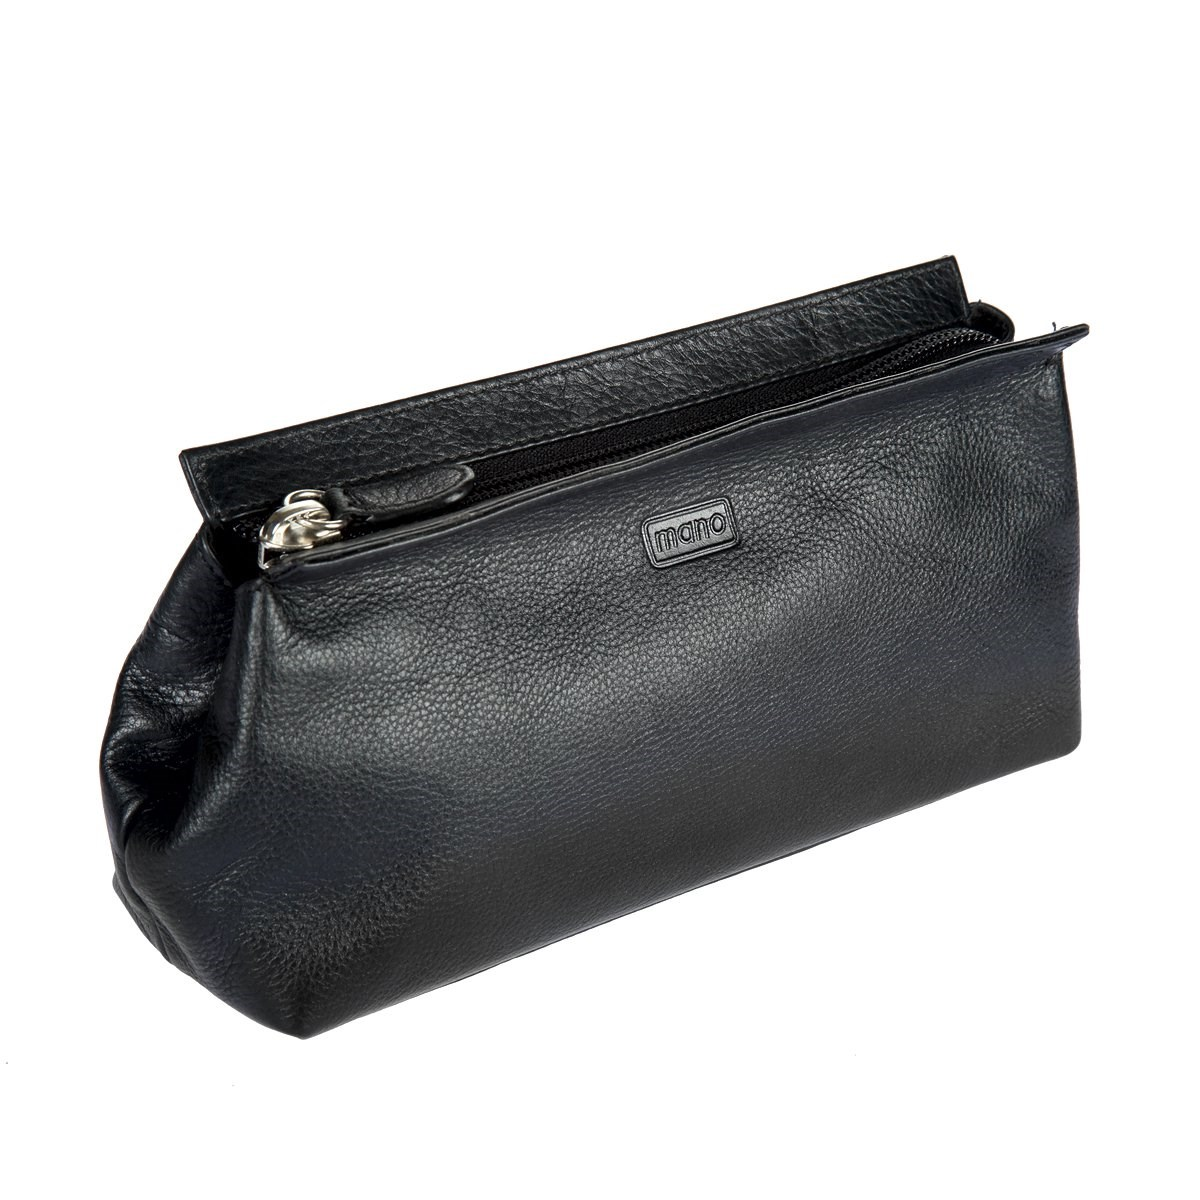 Make Up Bag Mano 13422 SETRU black sitemap 261 xml